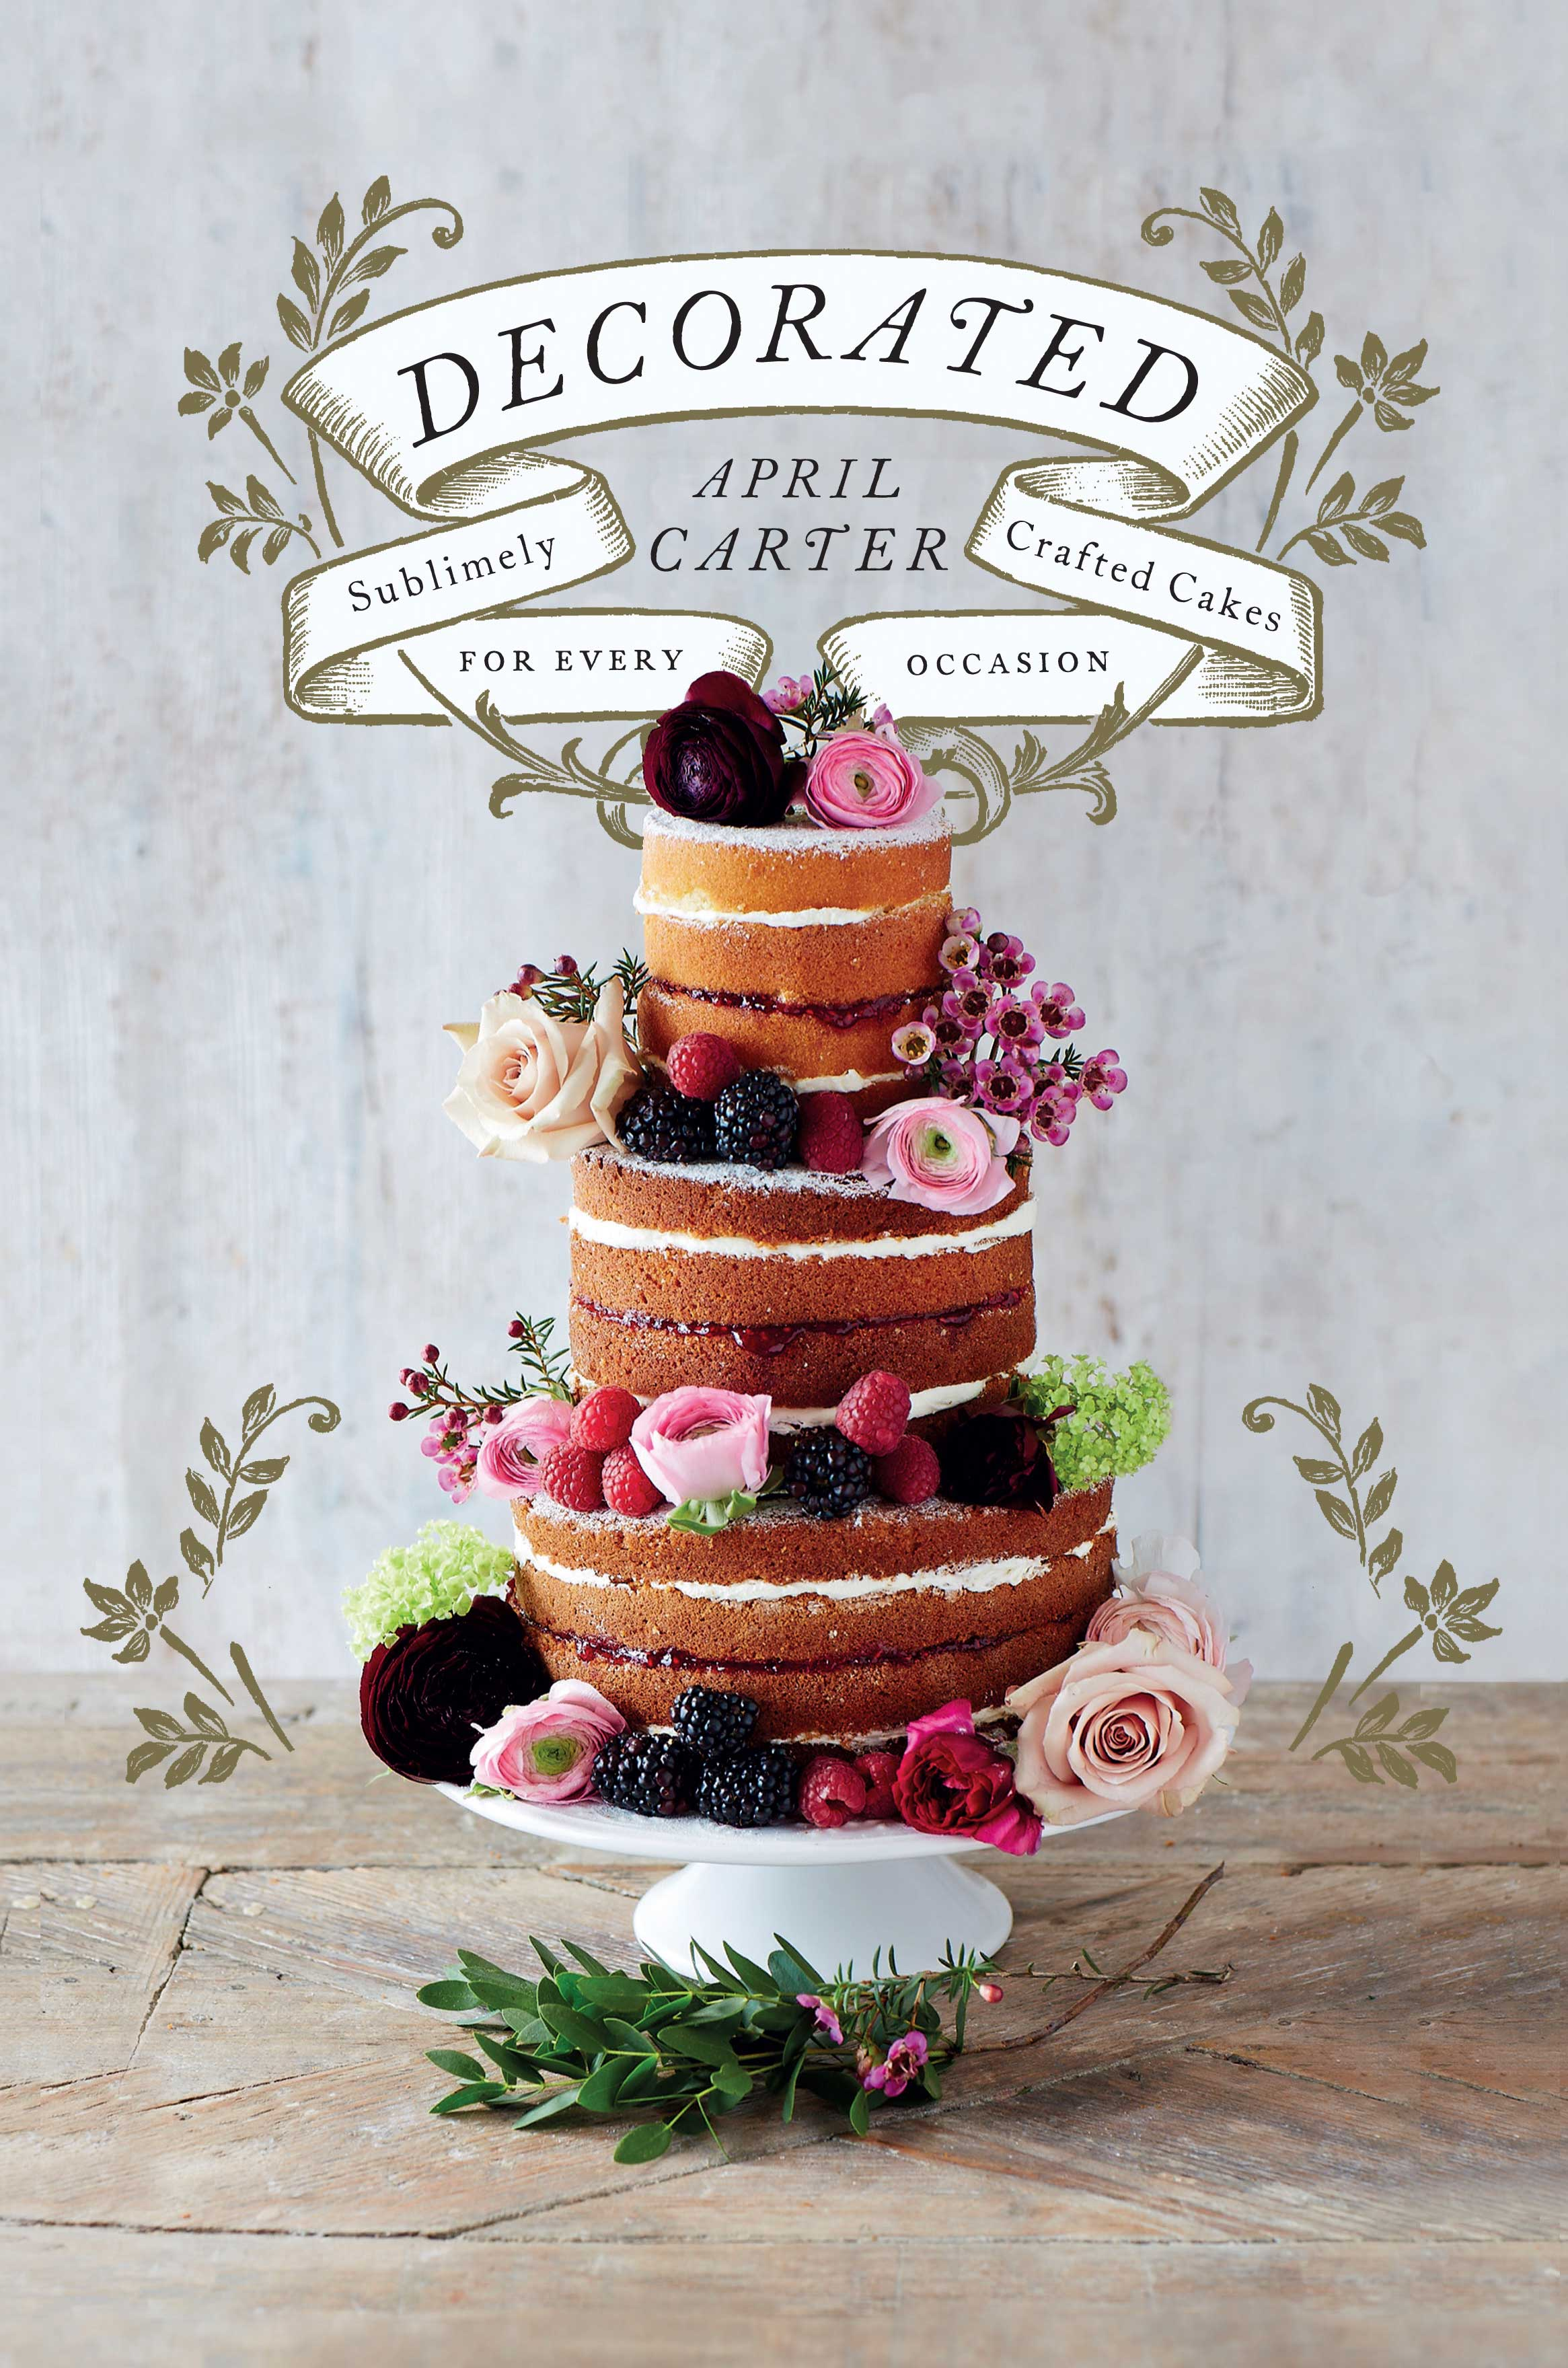 decorated-cake-recipe-book-by-april-carter